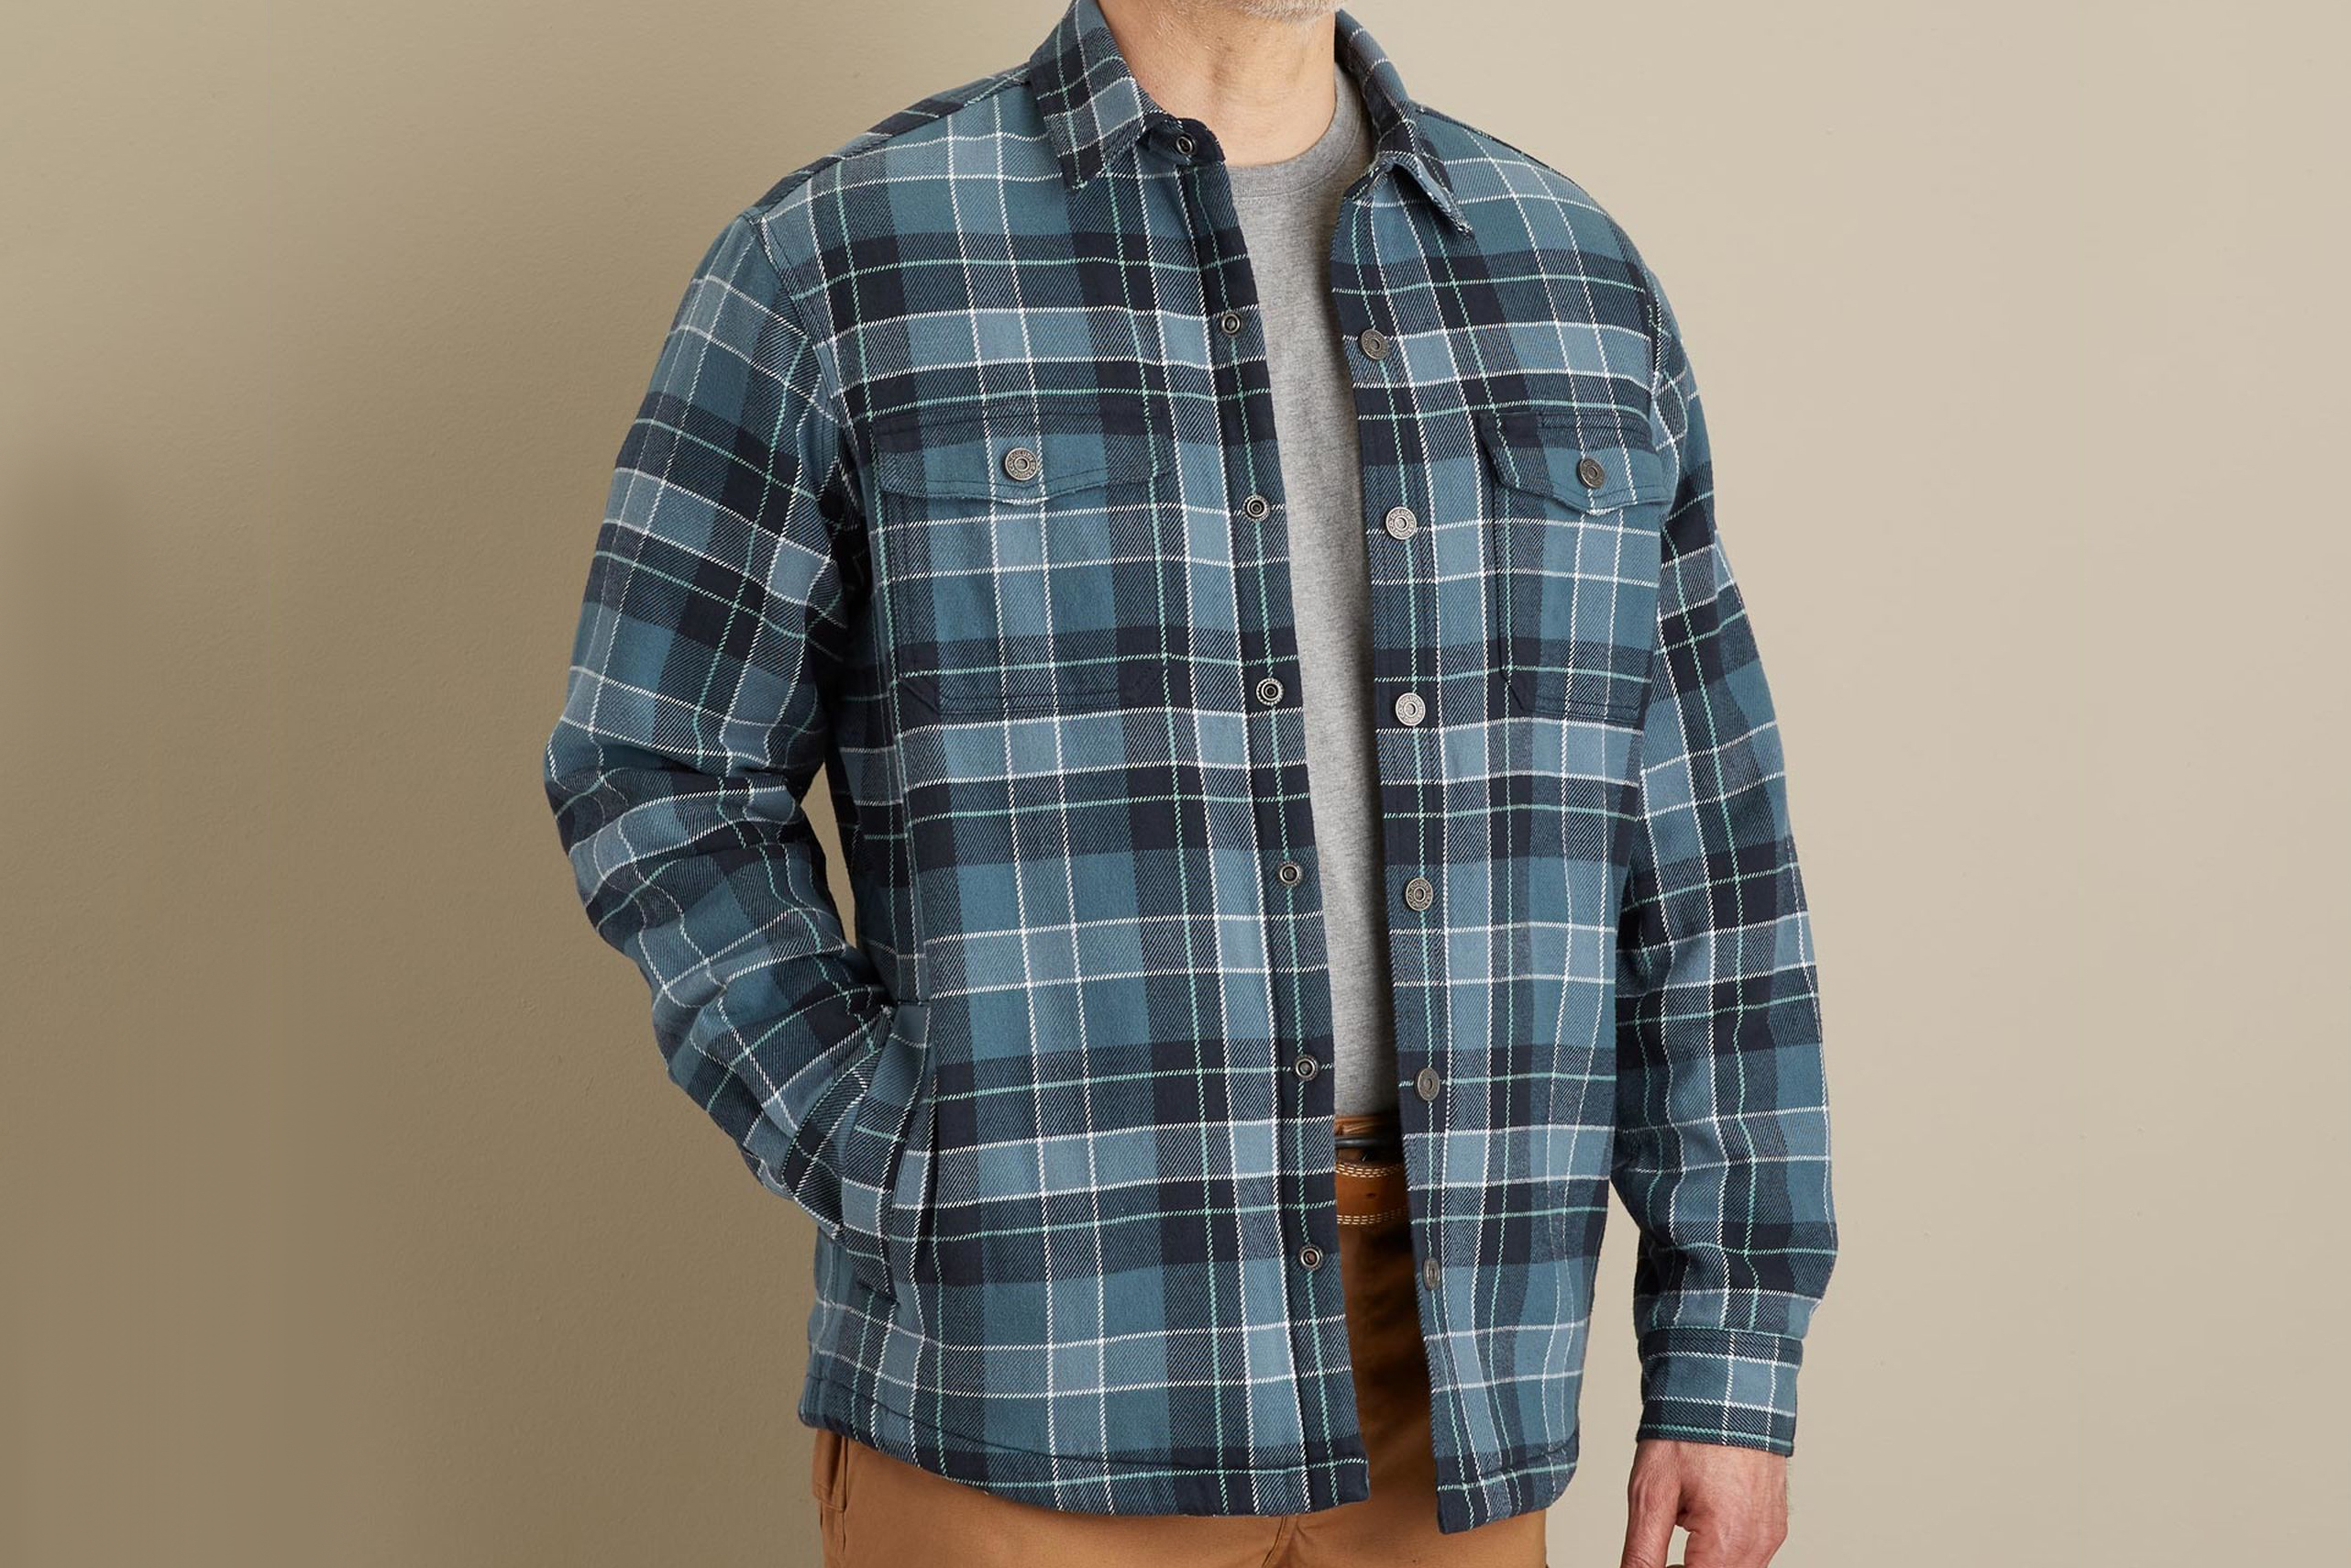 09896b6909bb Best Men's Flannels 2018: 'Performance' to Fashion Picks | GearJunkie